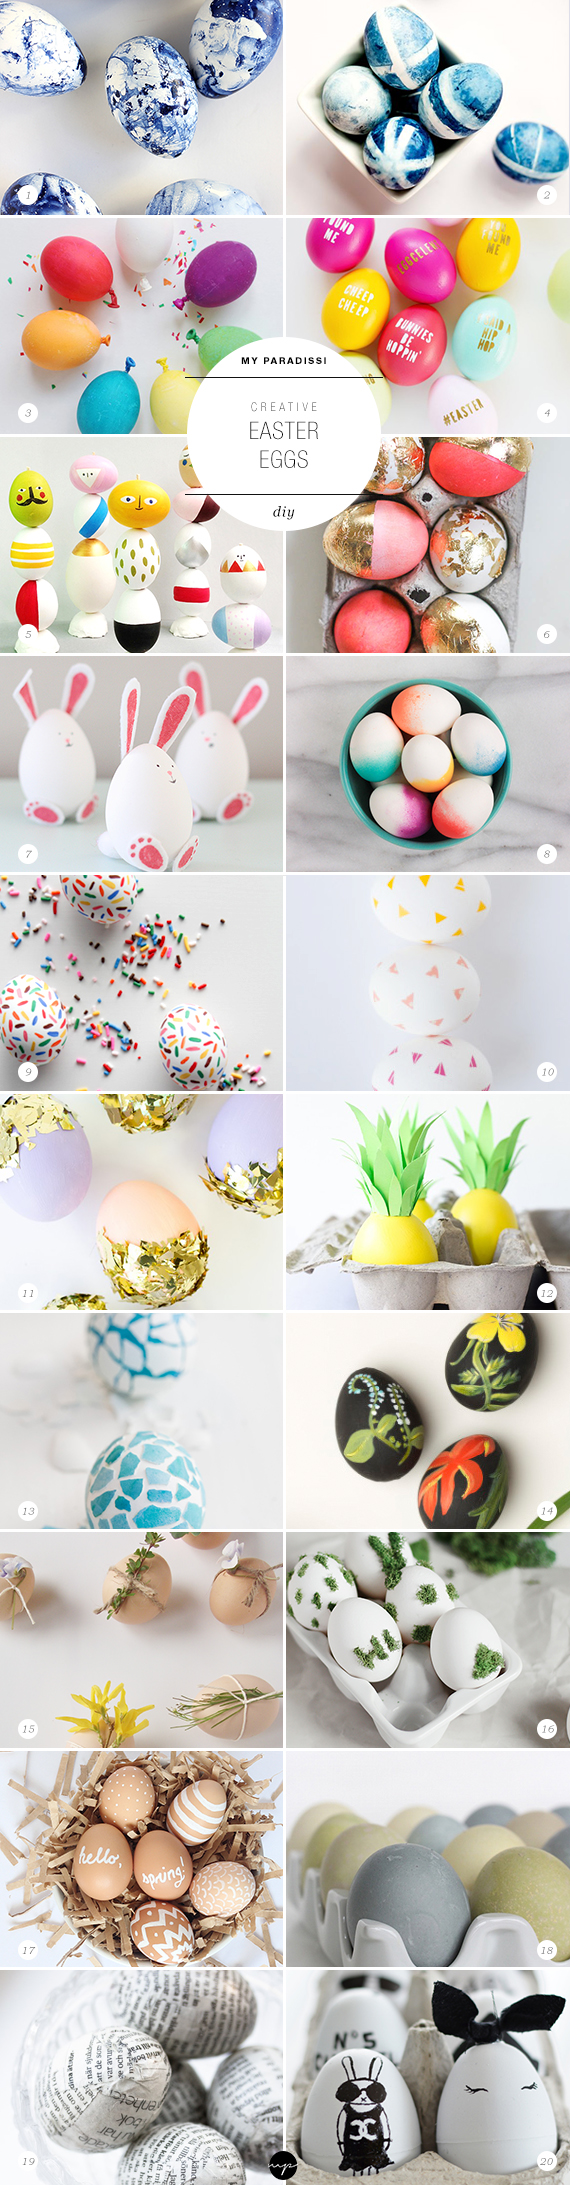 DIY: Creative Easter eggs